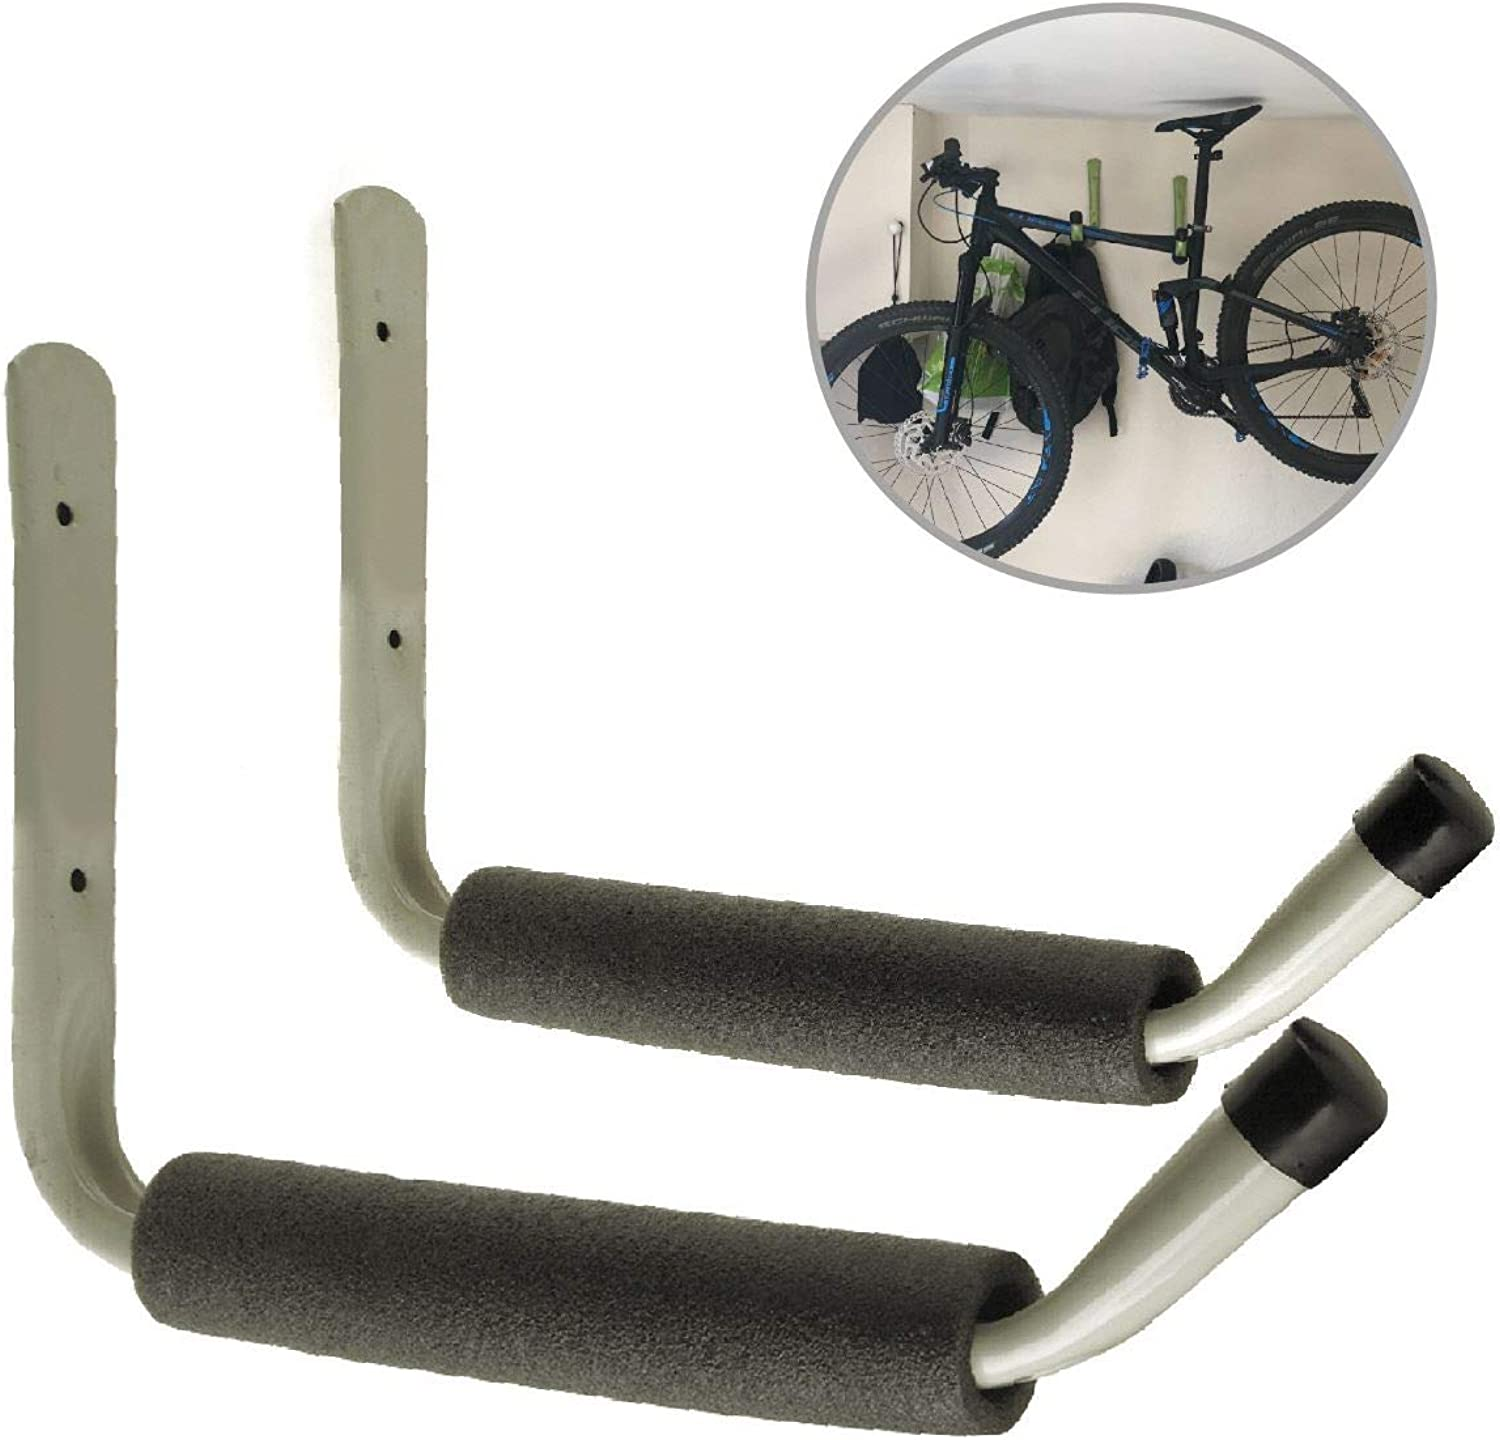 2 x Giant Padded Wall Hooks Ideal for Mountain Bikes, Canoes & Kayak Boats